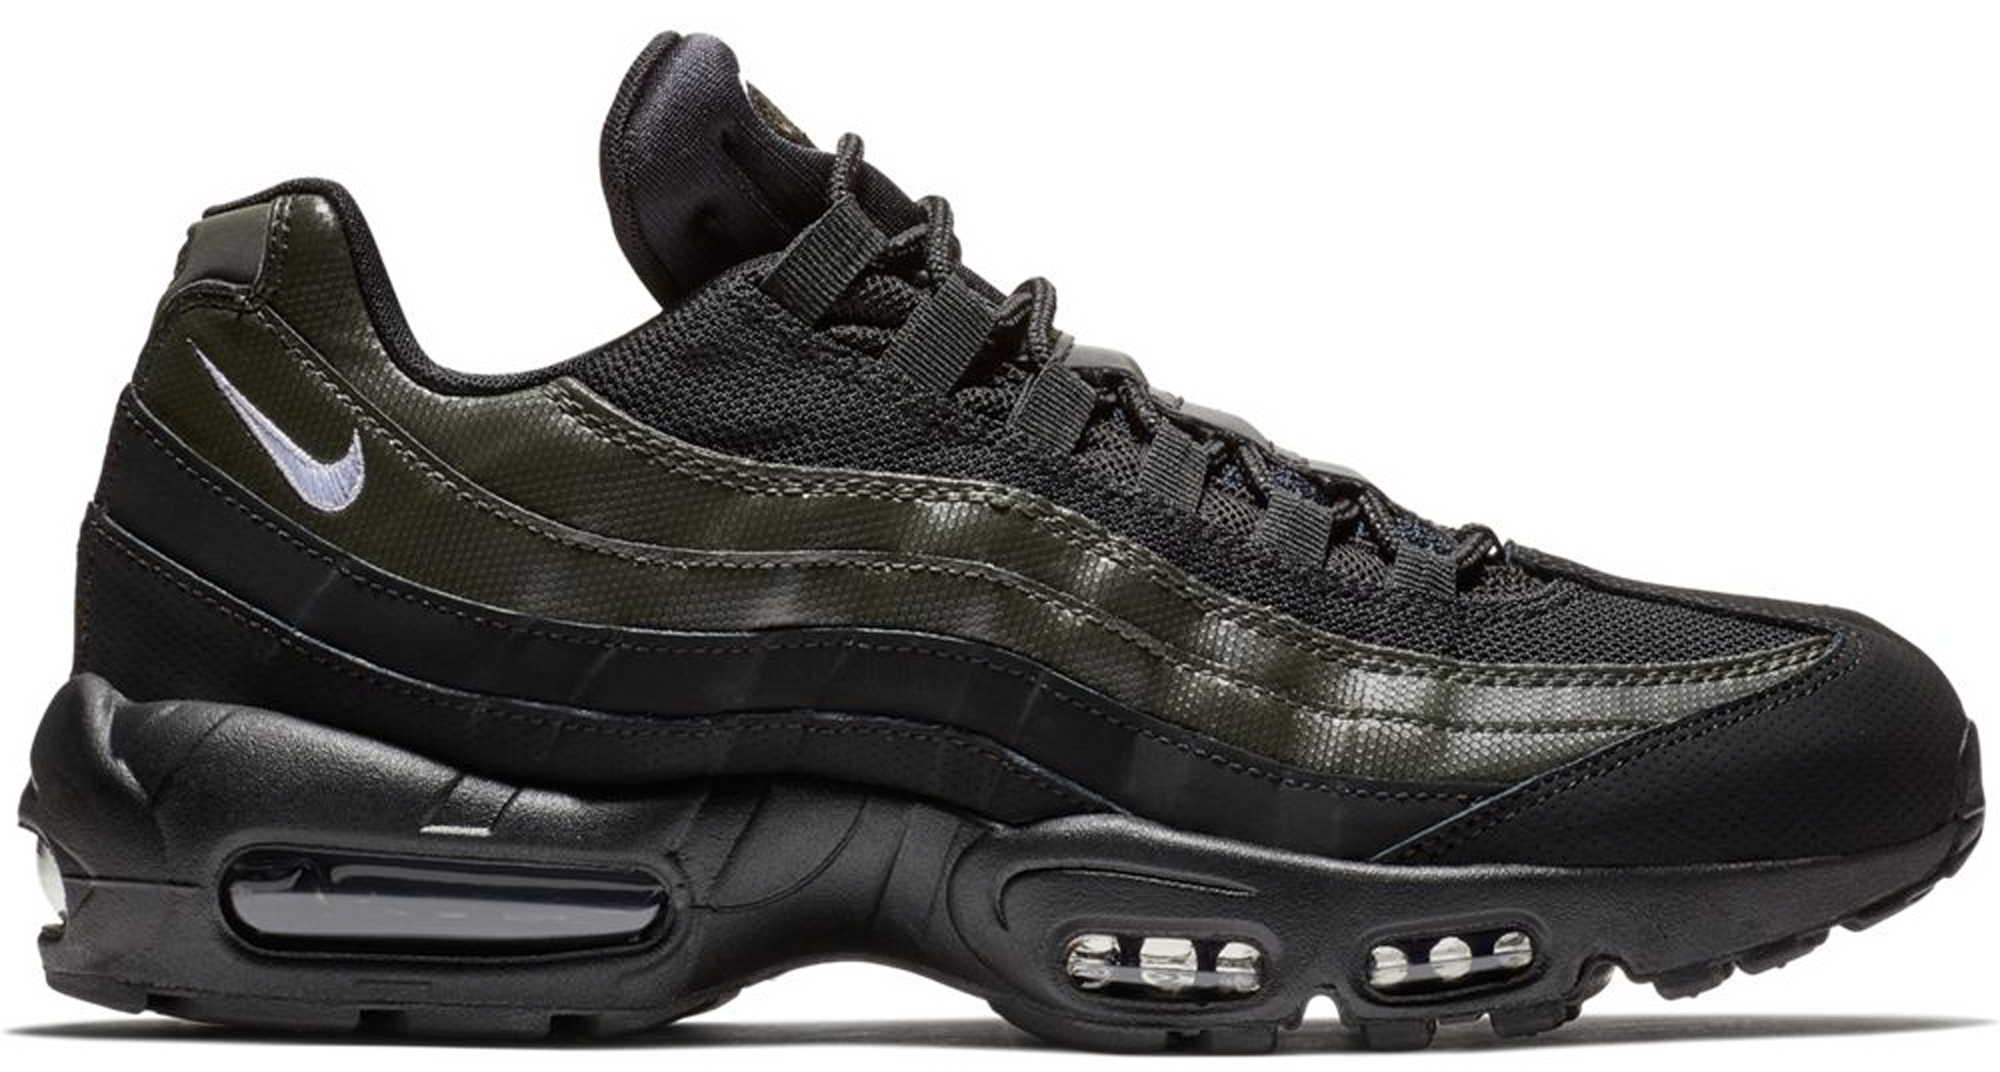 Air Max 95 Black Sequoia